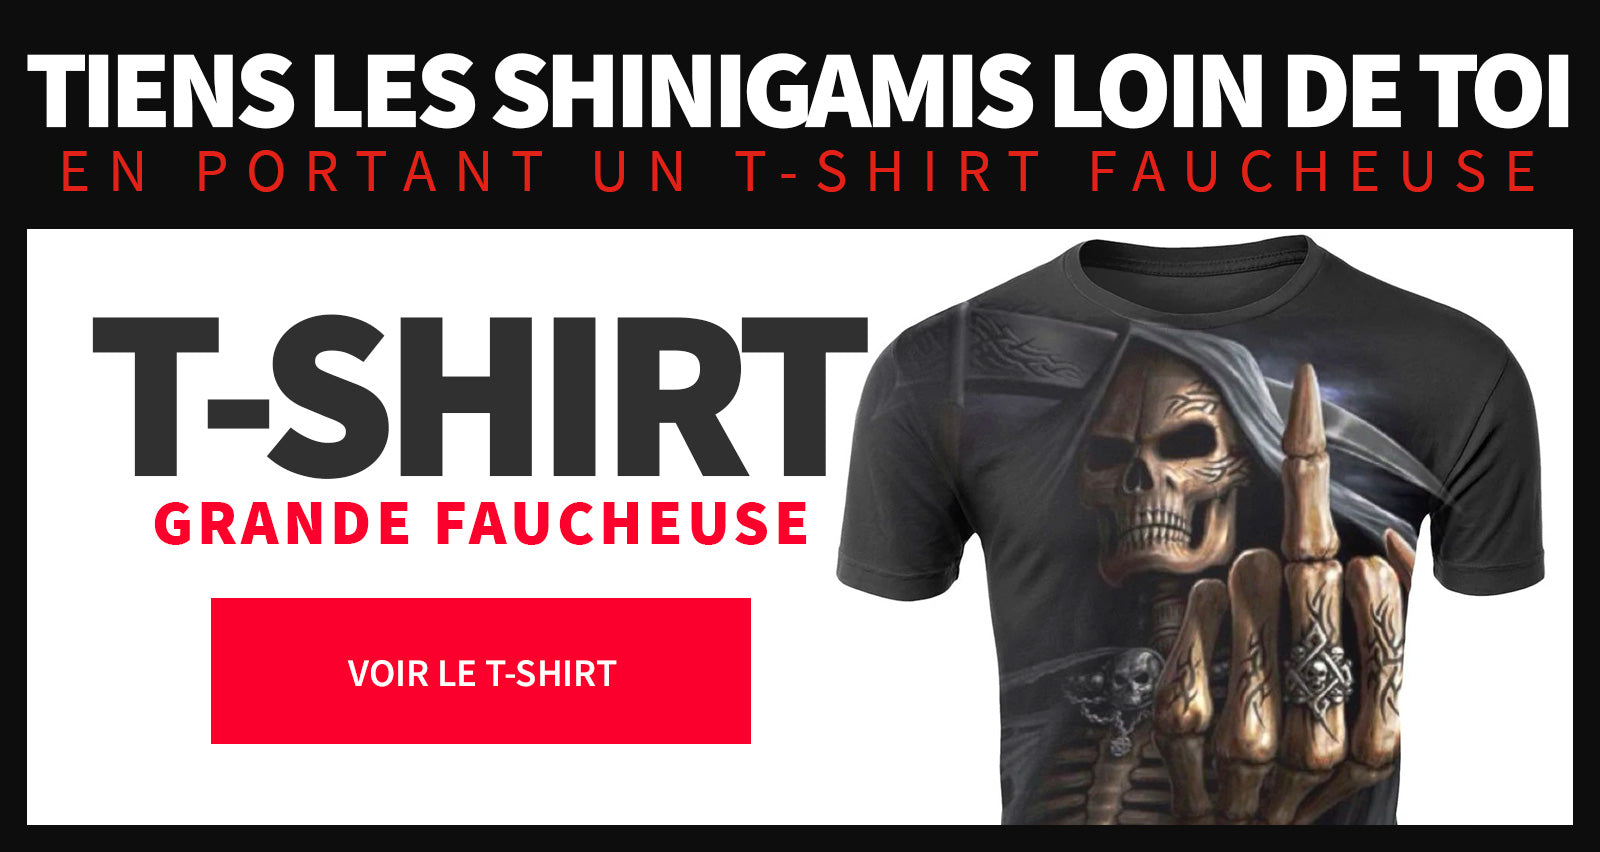 T shirt faucheuse